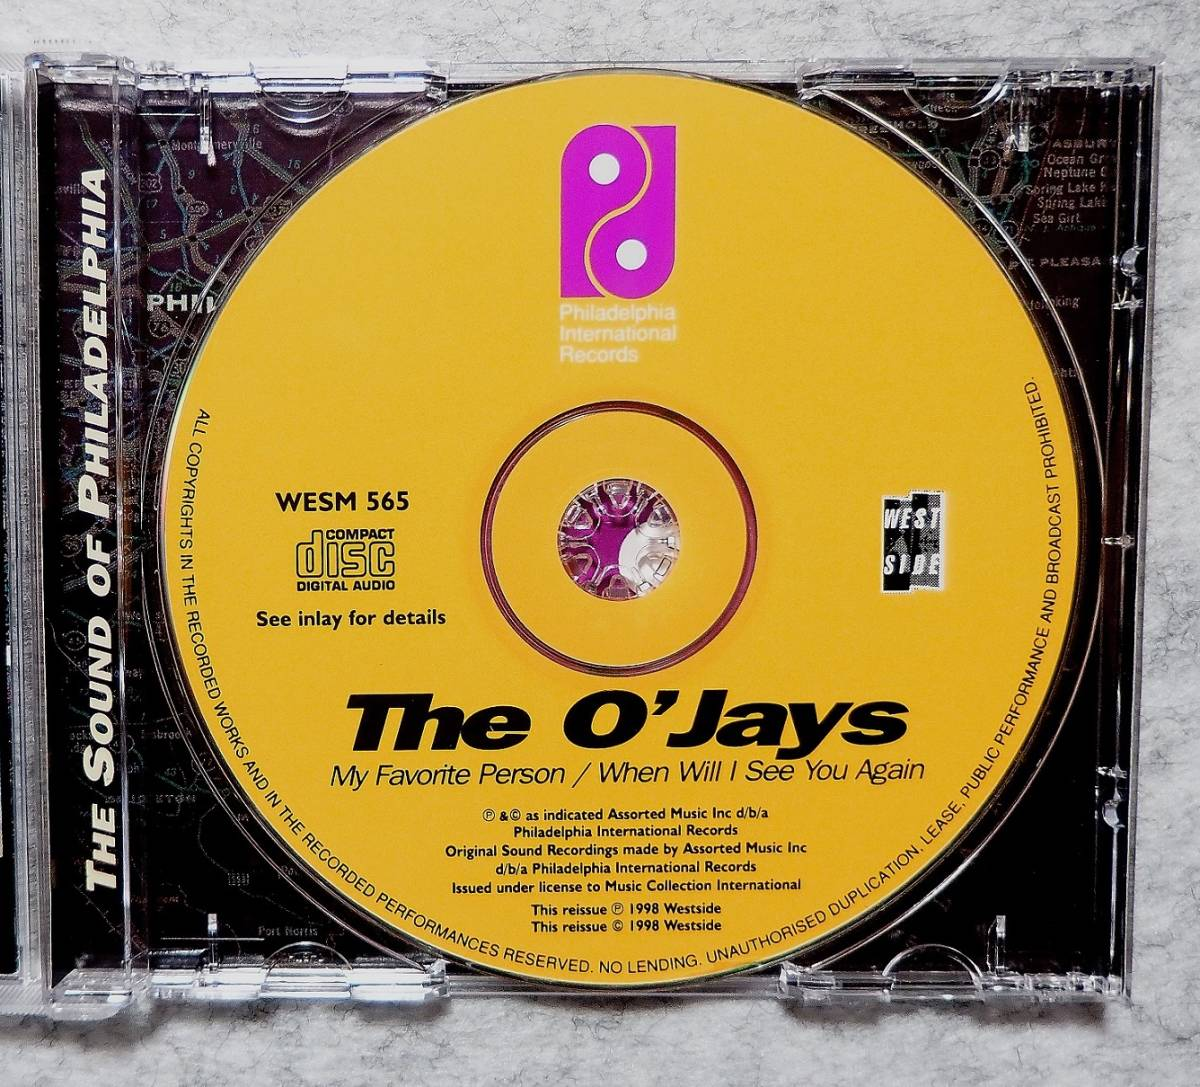 ★ The O'Jays オージェーズ MY FAVORITE PERSON / WHEN WILL I SEE YOU AGAIN 82年 83年 2in1 Gamble & Huff McFadden & WhiteHead _画像3